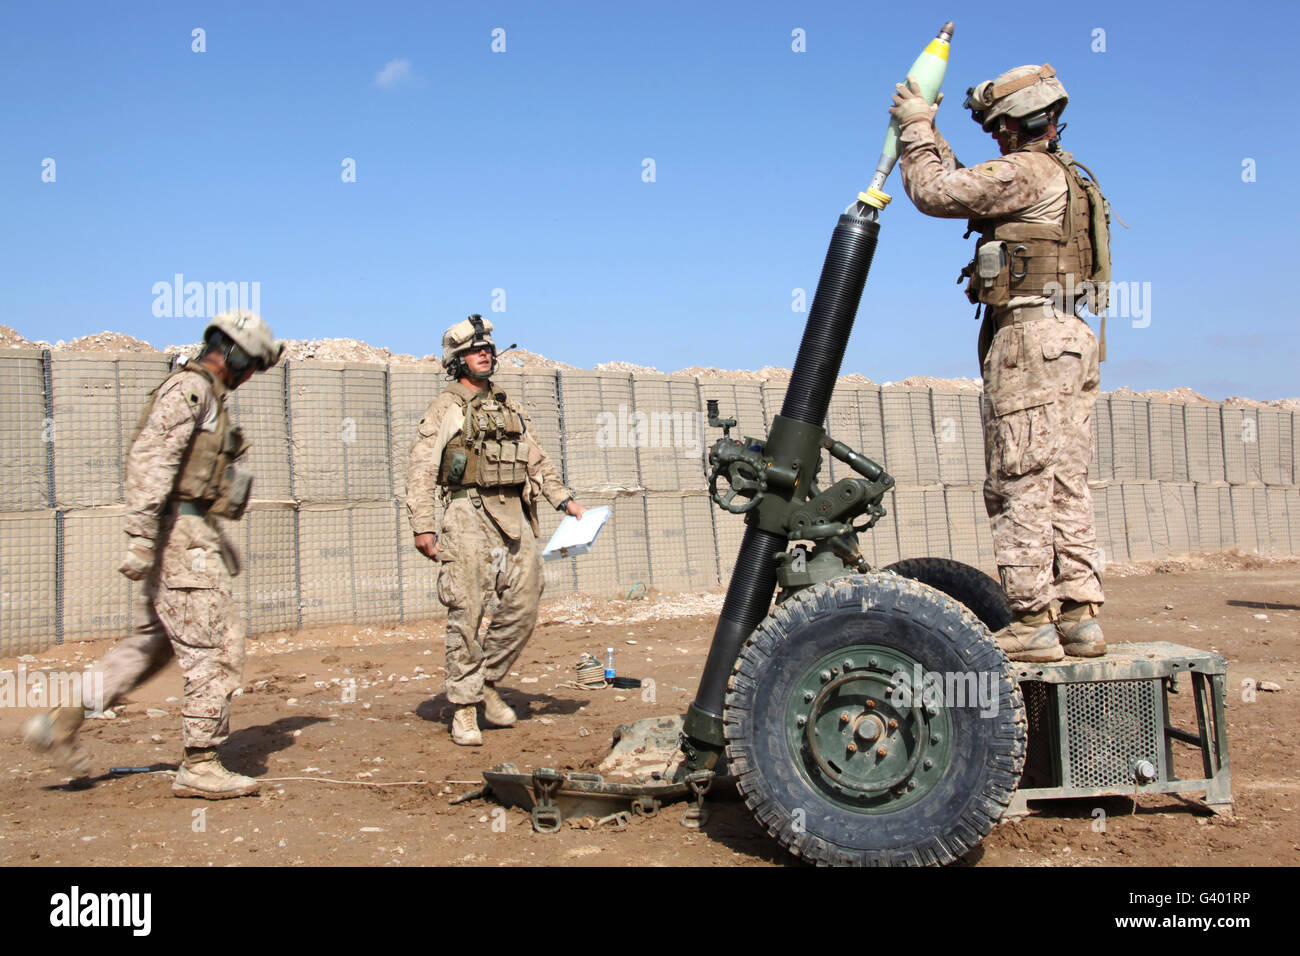 Marines prepare to fire a 120mm mortar.